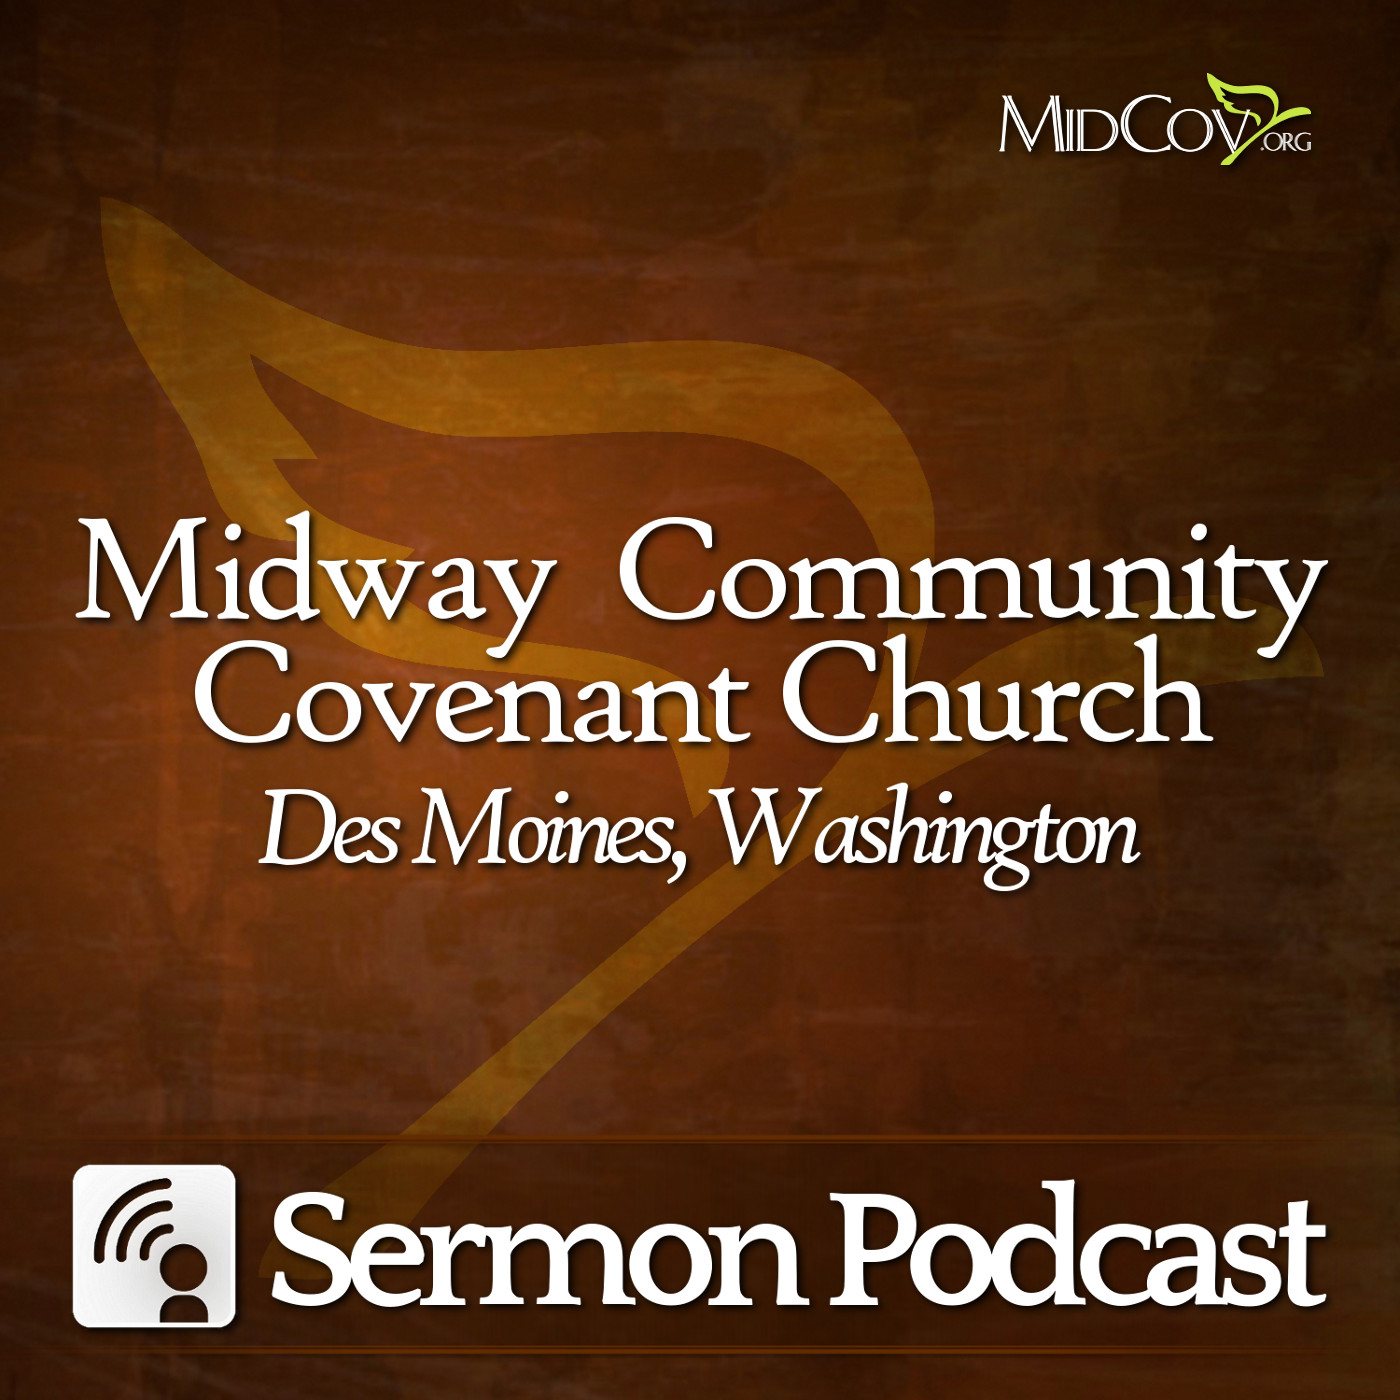 Midway Community Covenant Church Sermon Podcast